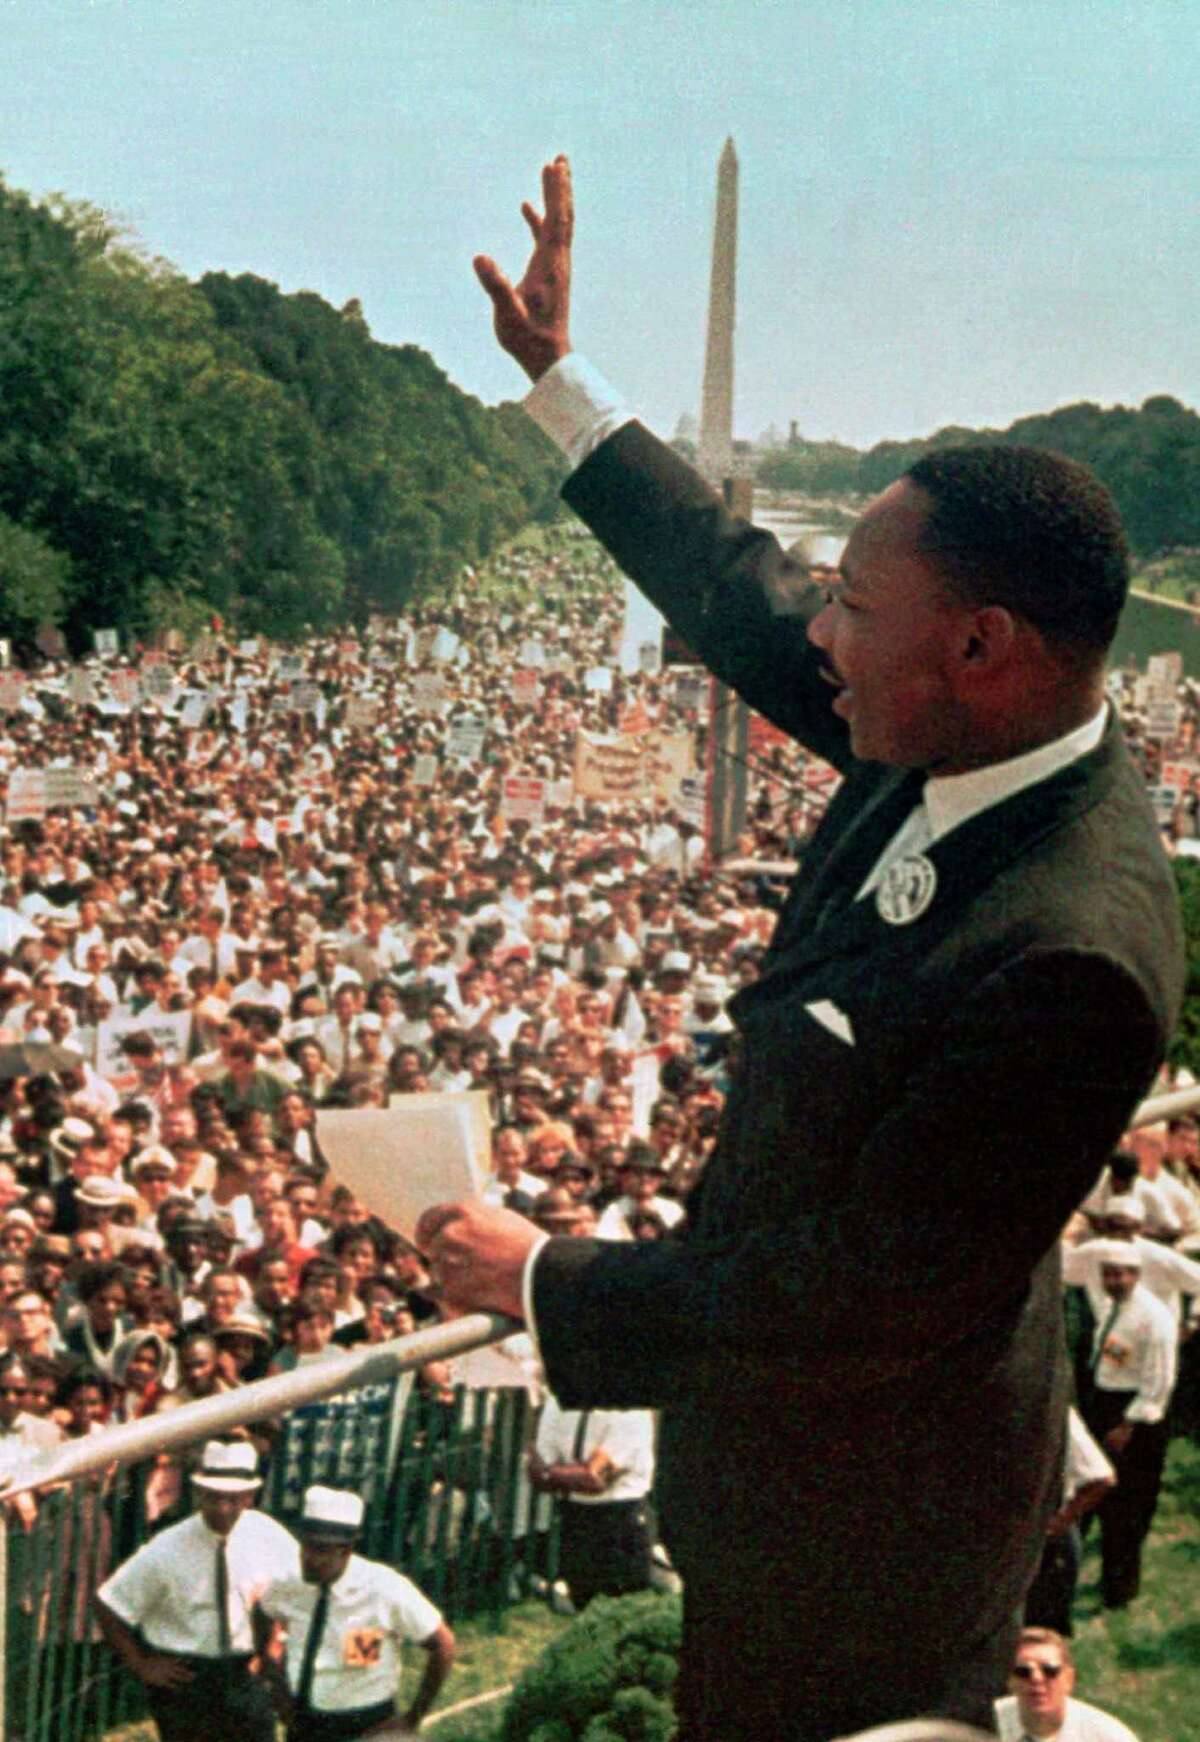 Dr. Martin Luther King Jr. acknowledging the crowd at the Lincoln Memorial for his